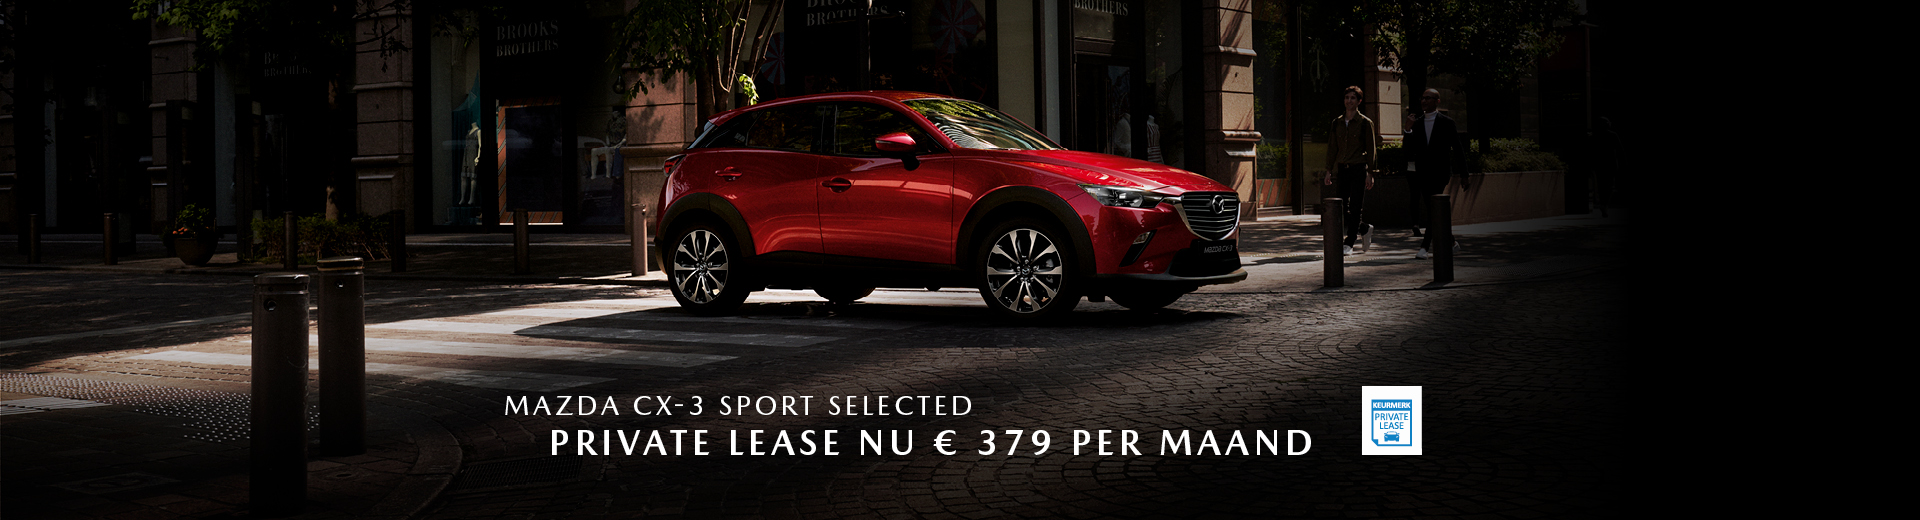 190283 Mazda Q3_Banner Mazda CX-3 Sport Selected_Private Lease_1920x520px [opmaak 01]